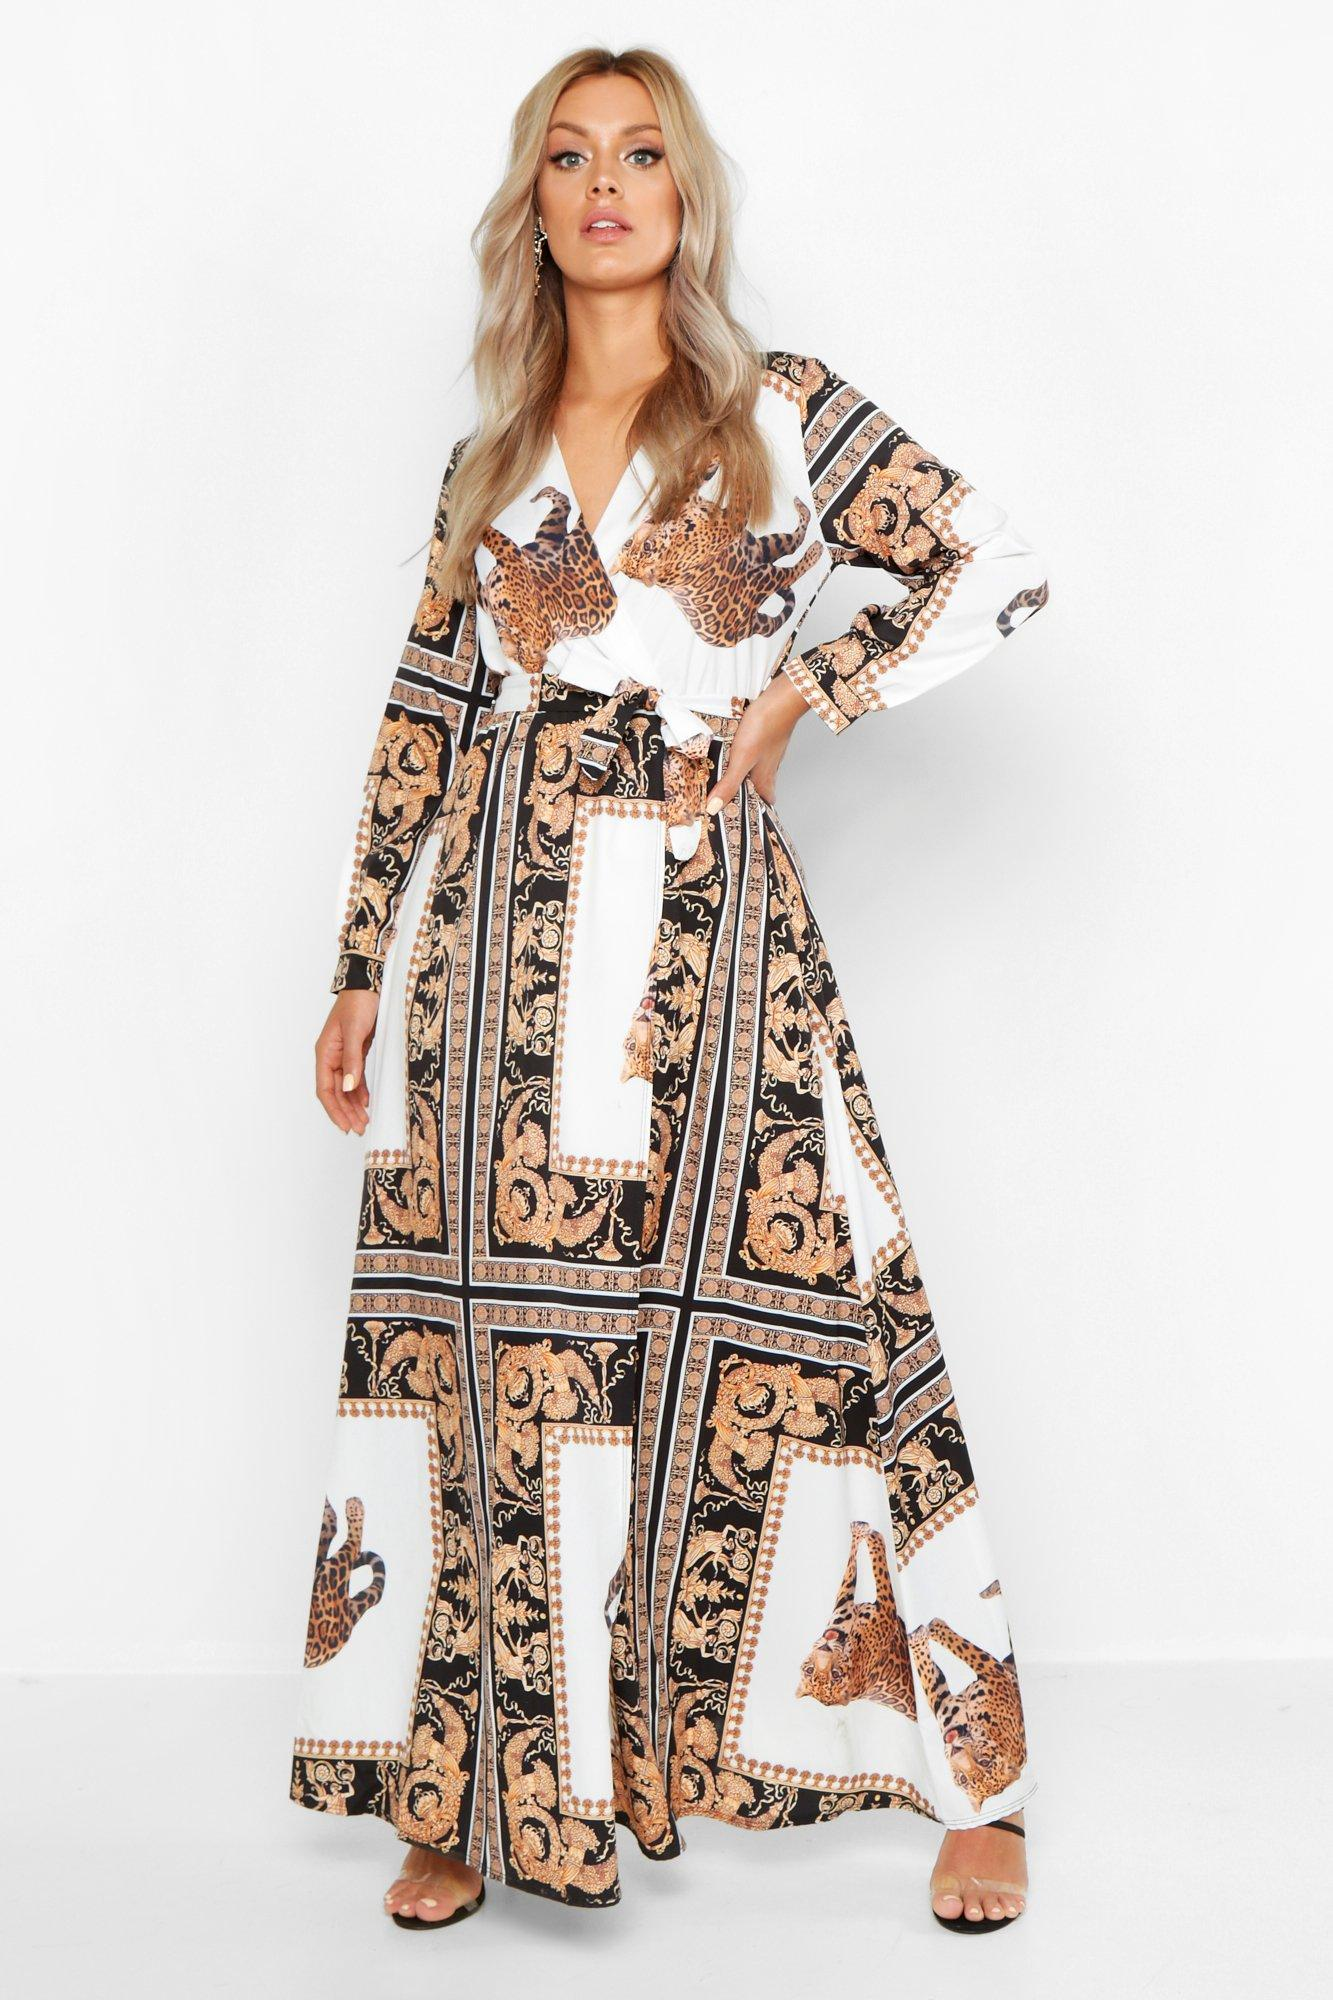 70s Outfits – 70s Style Ideas for Women Plus Chain Print Maxi Dress $62.00 AT vintagedancer.com